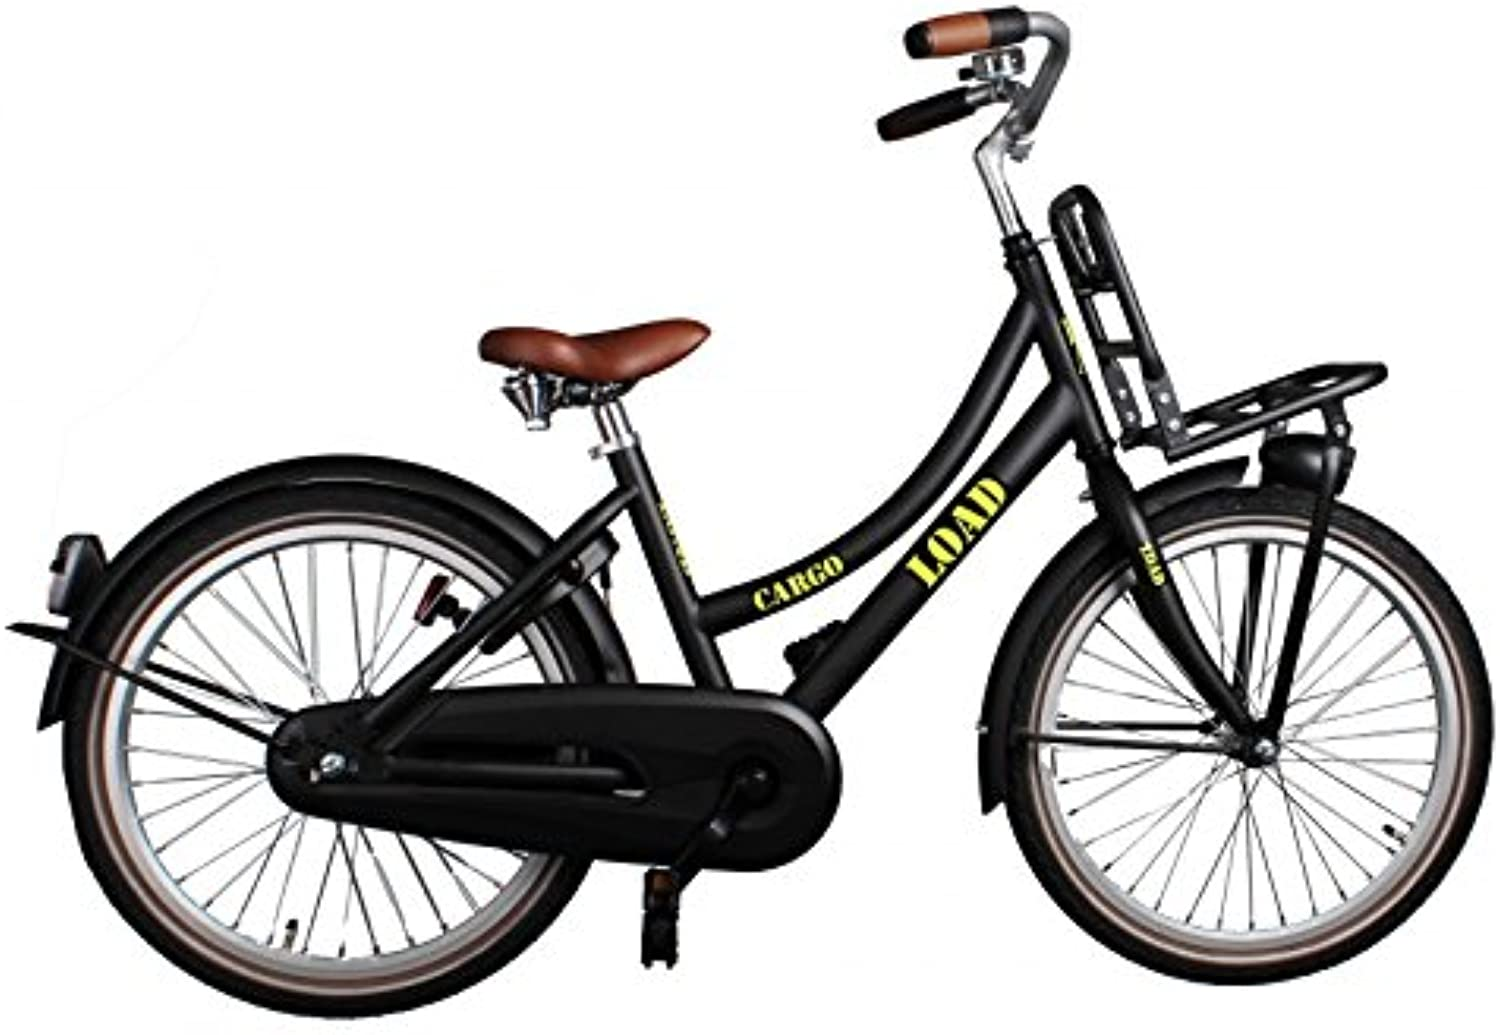 Cargo Load 20 Inch 33 cm Girls Coaster Brake Black